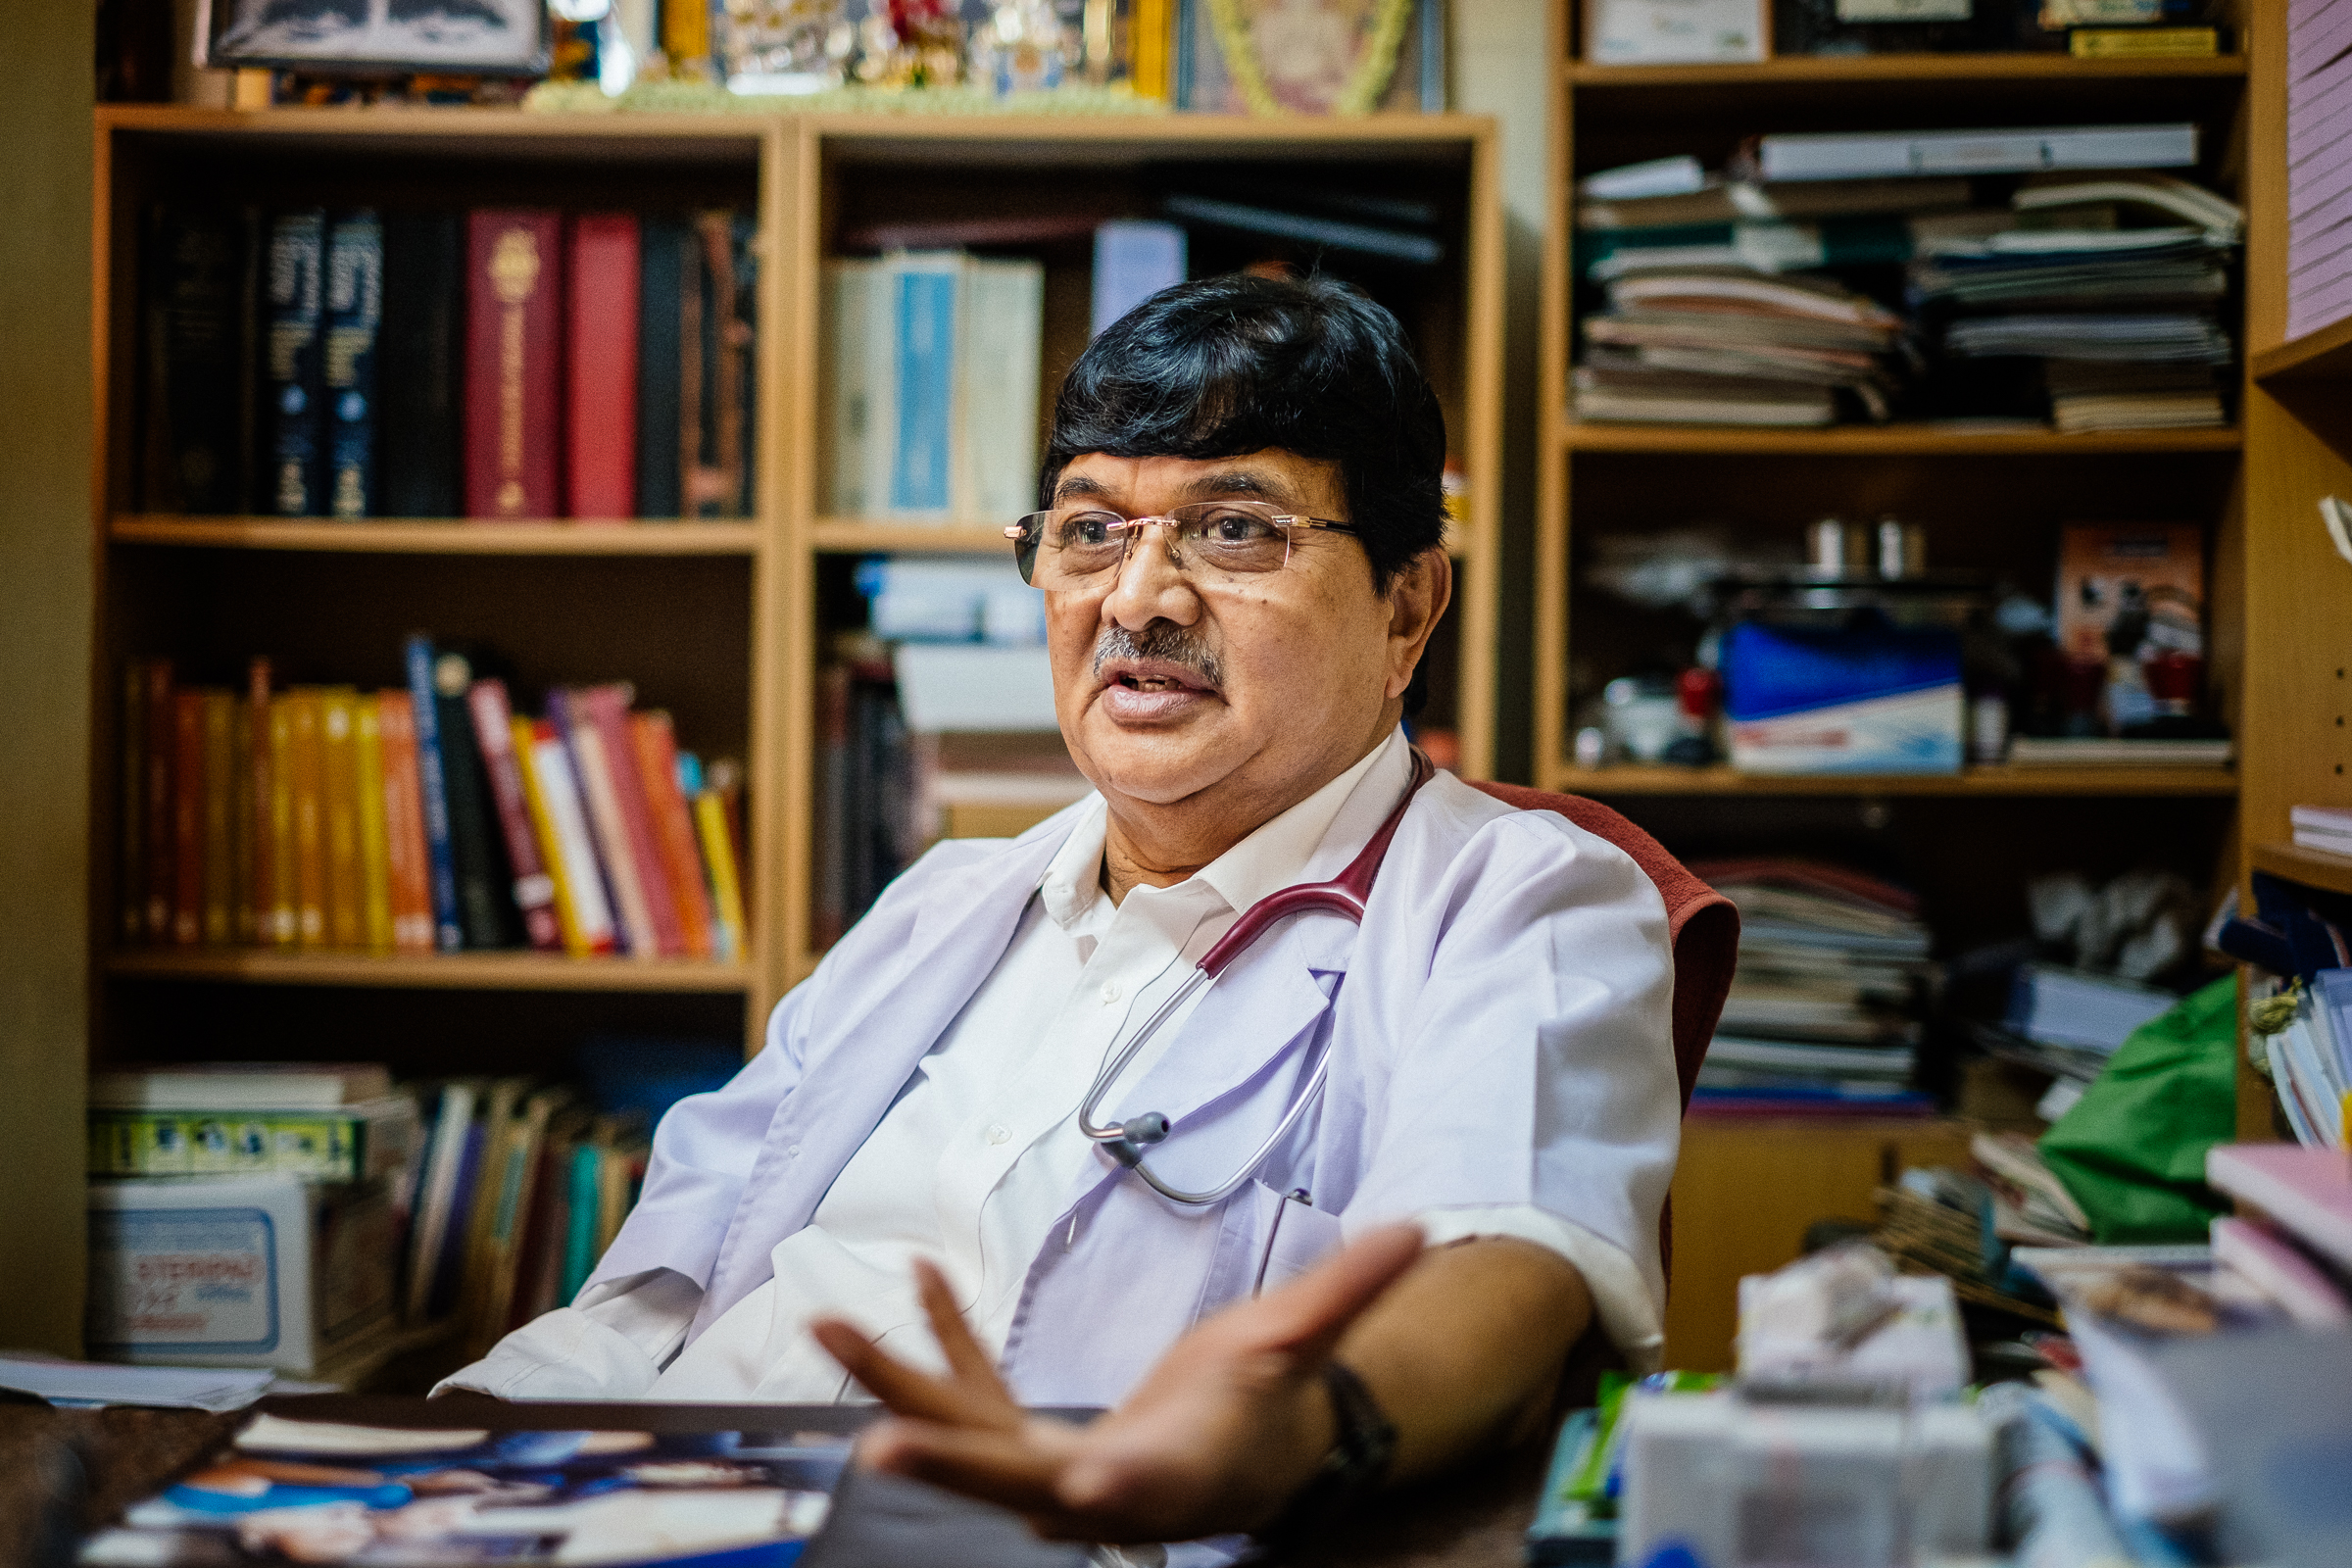 Highlights from our interview with Gautam, a GP and owner of Gopal Medical Centre, a private polyclinic for middle-income patients in Bangalore.